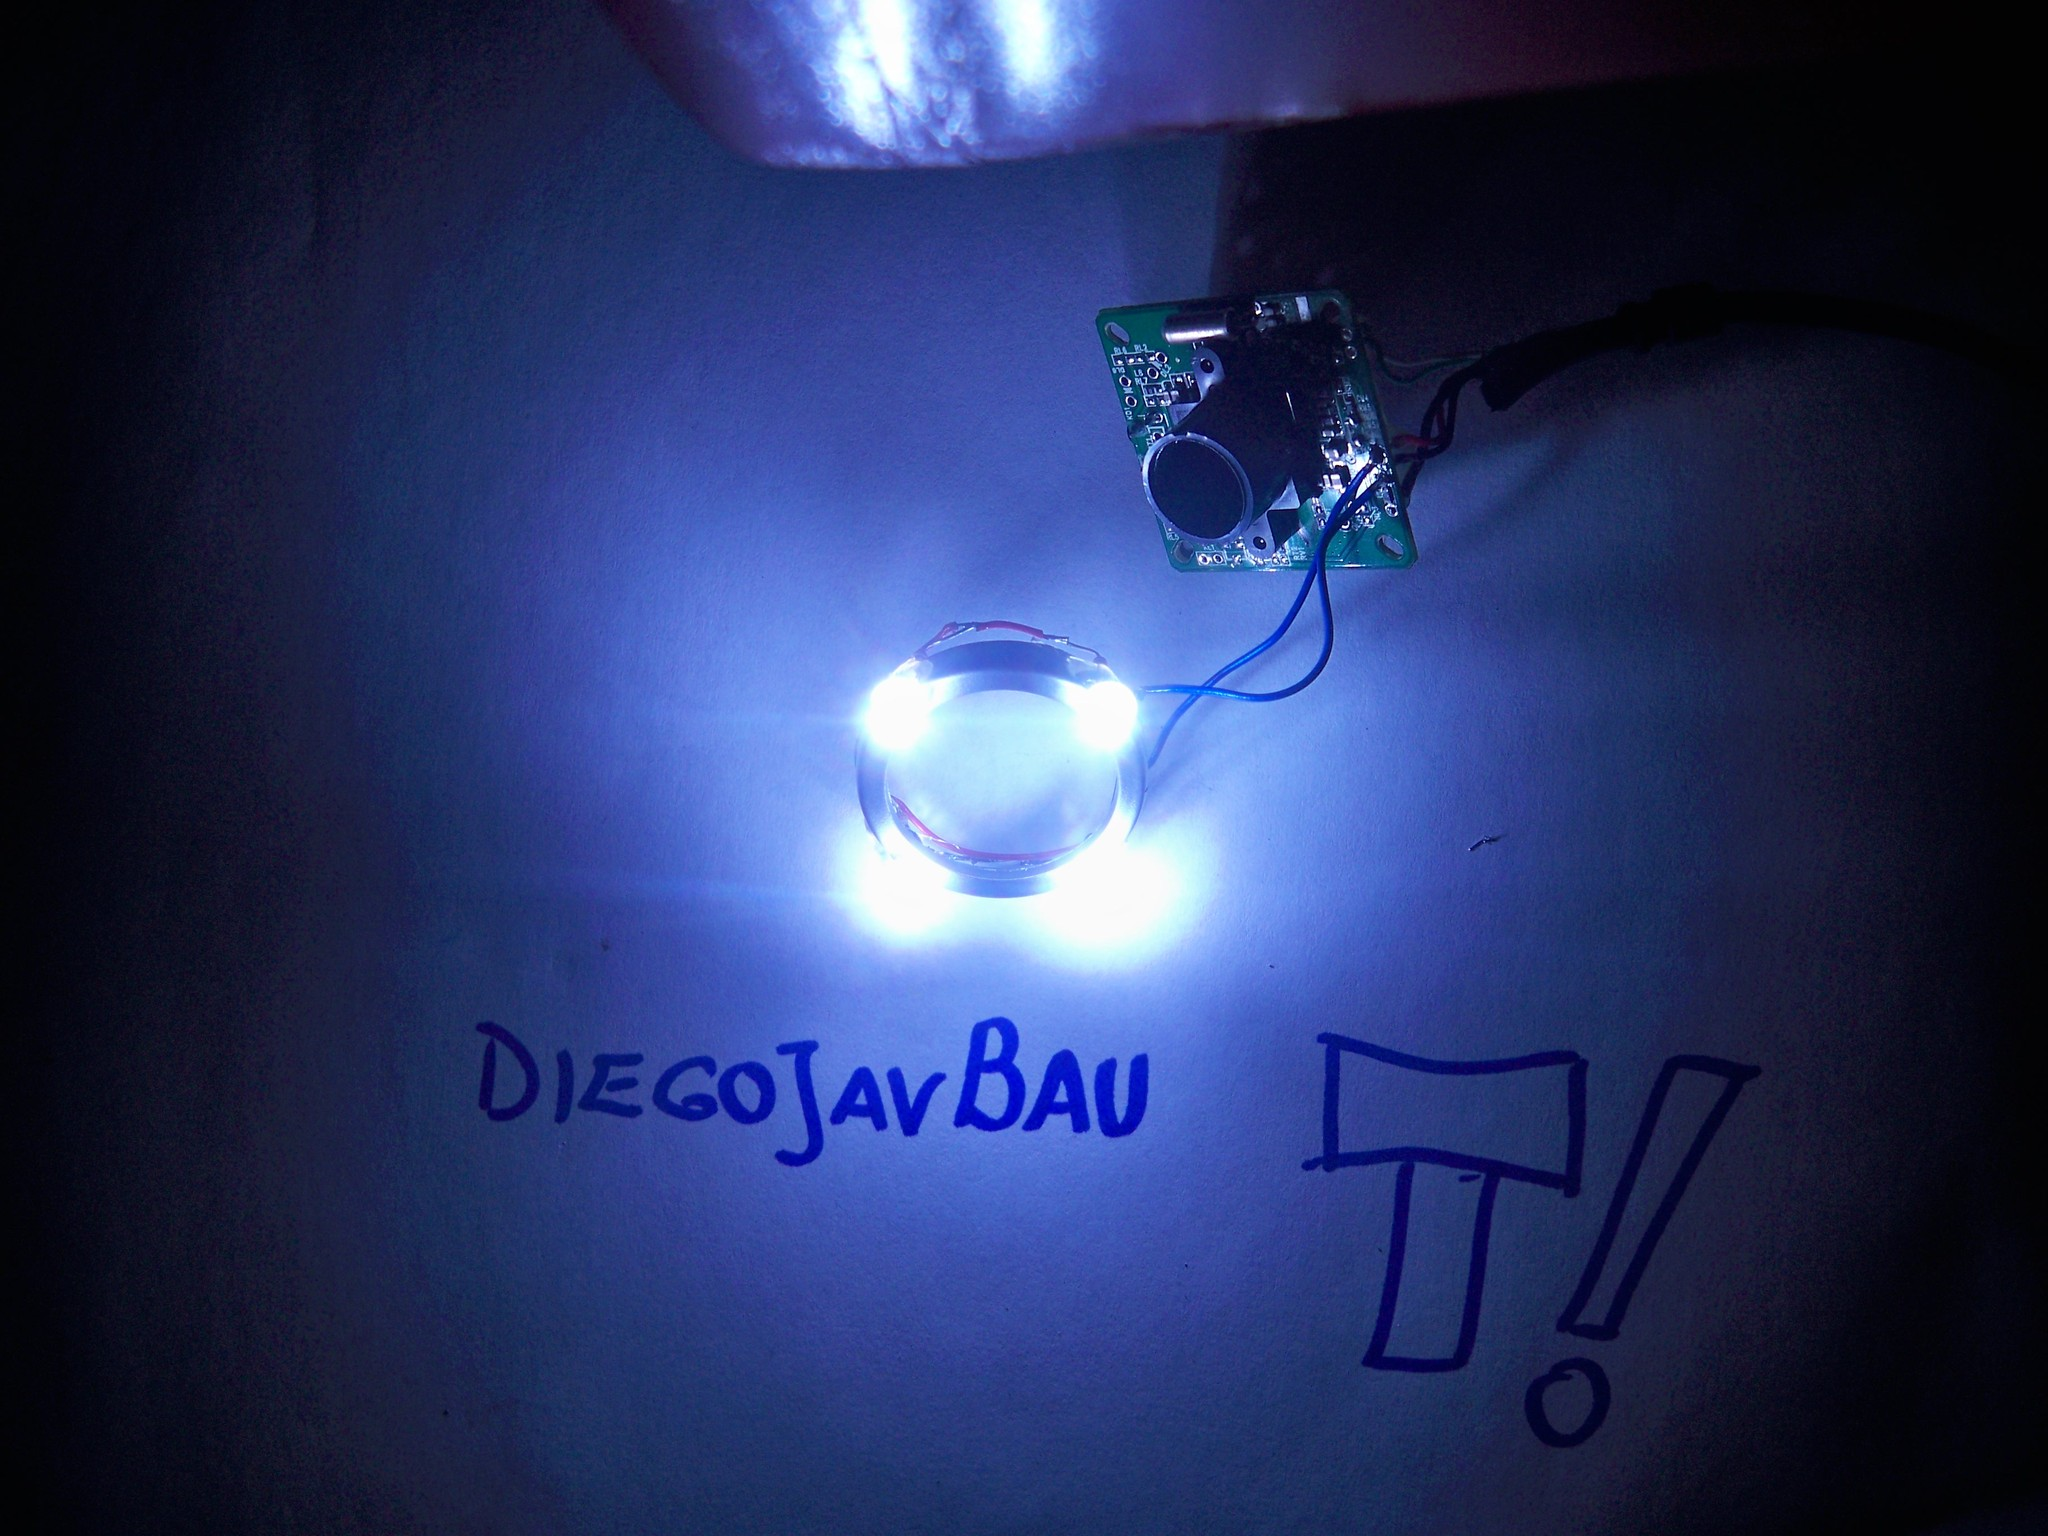 De webcam pedorra a microscopio USB (DIY propio)